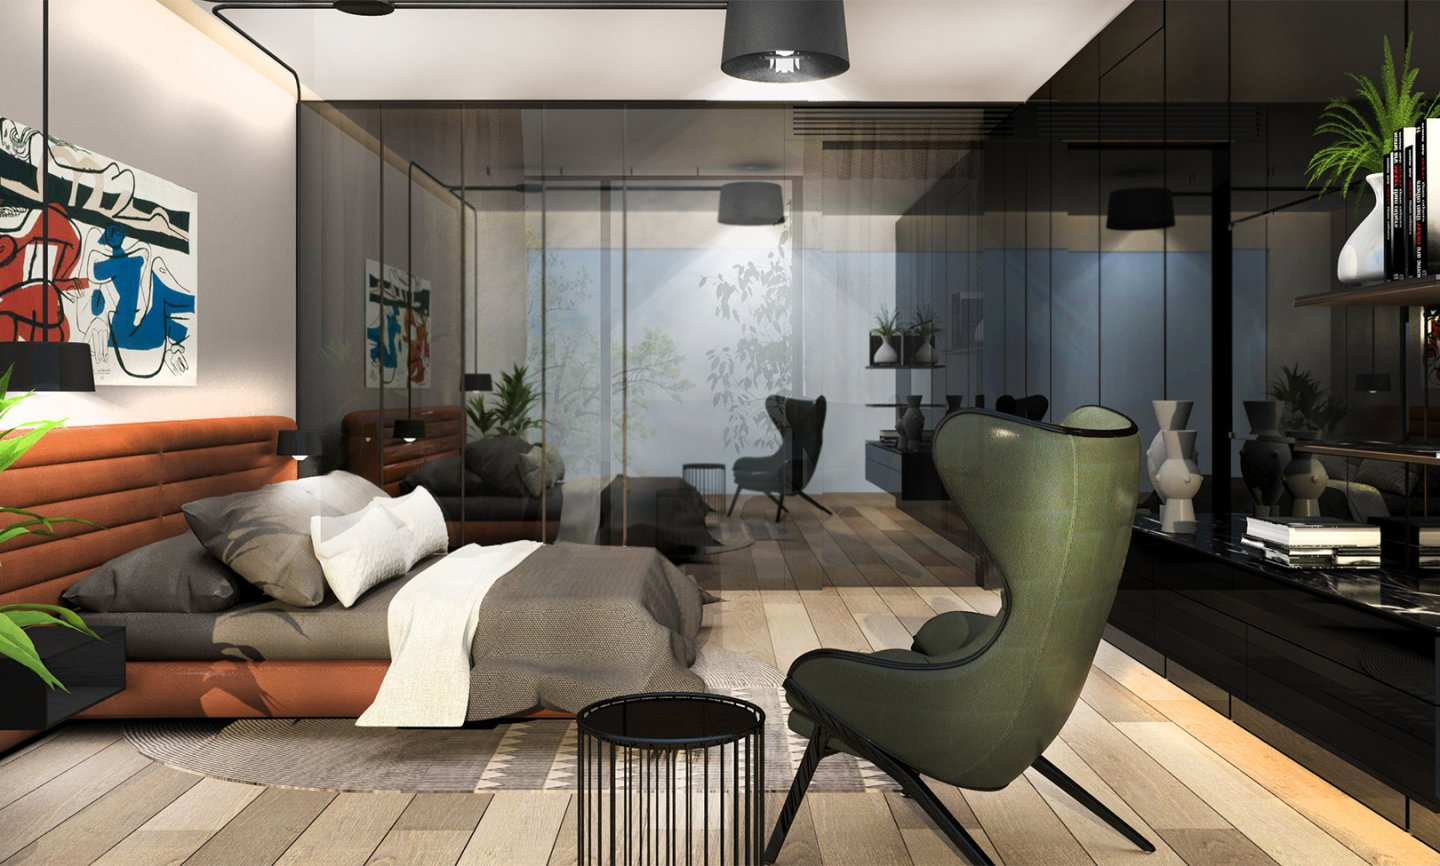 N.S Apartment - project overview image